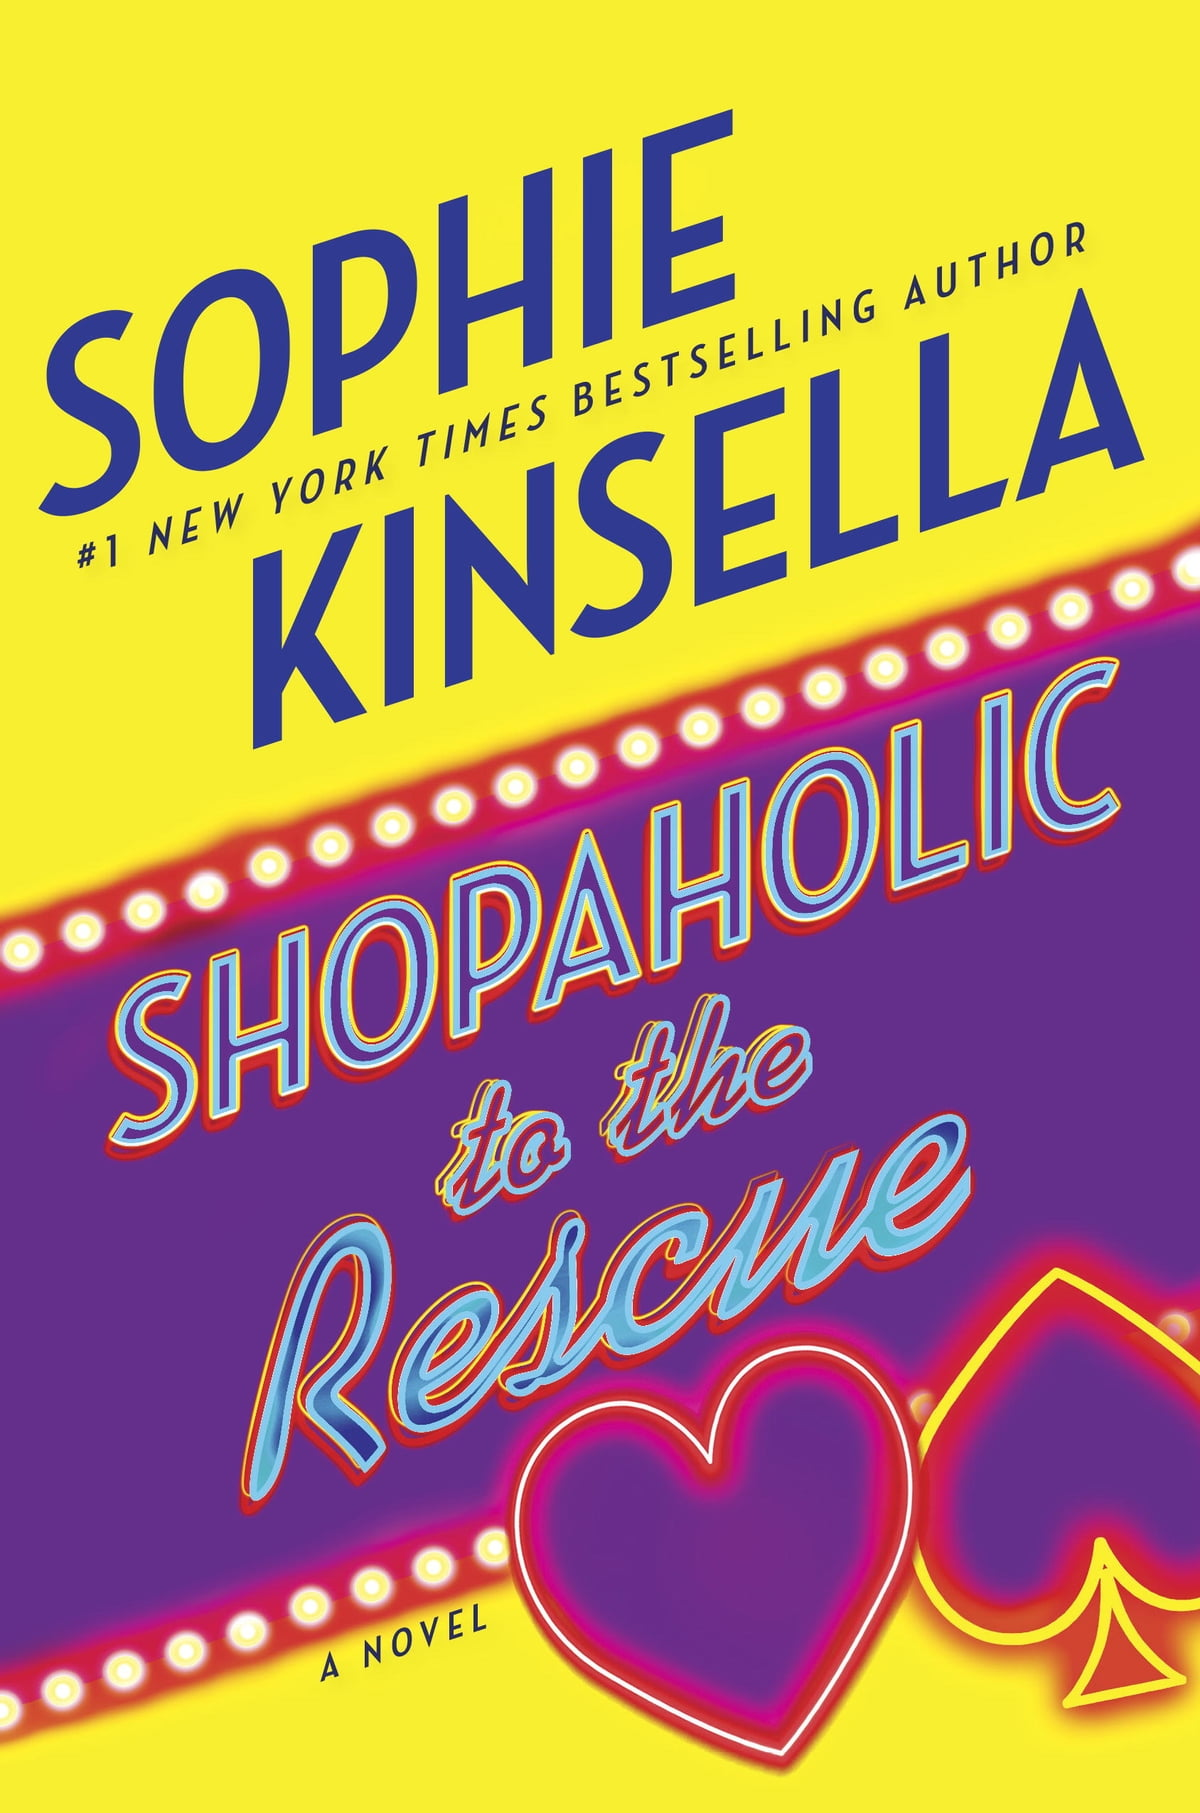 My not so perfect life ebook by sophie kinsella 9780812998276 shopaholic to the rescue a novel ebook by sophie kinsella fandeluxe Choice Image